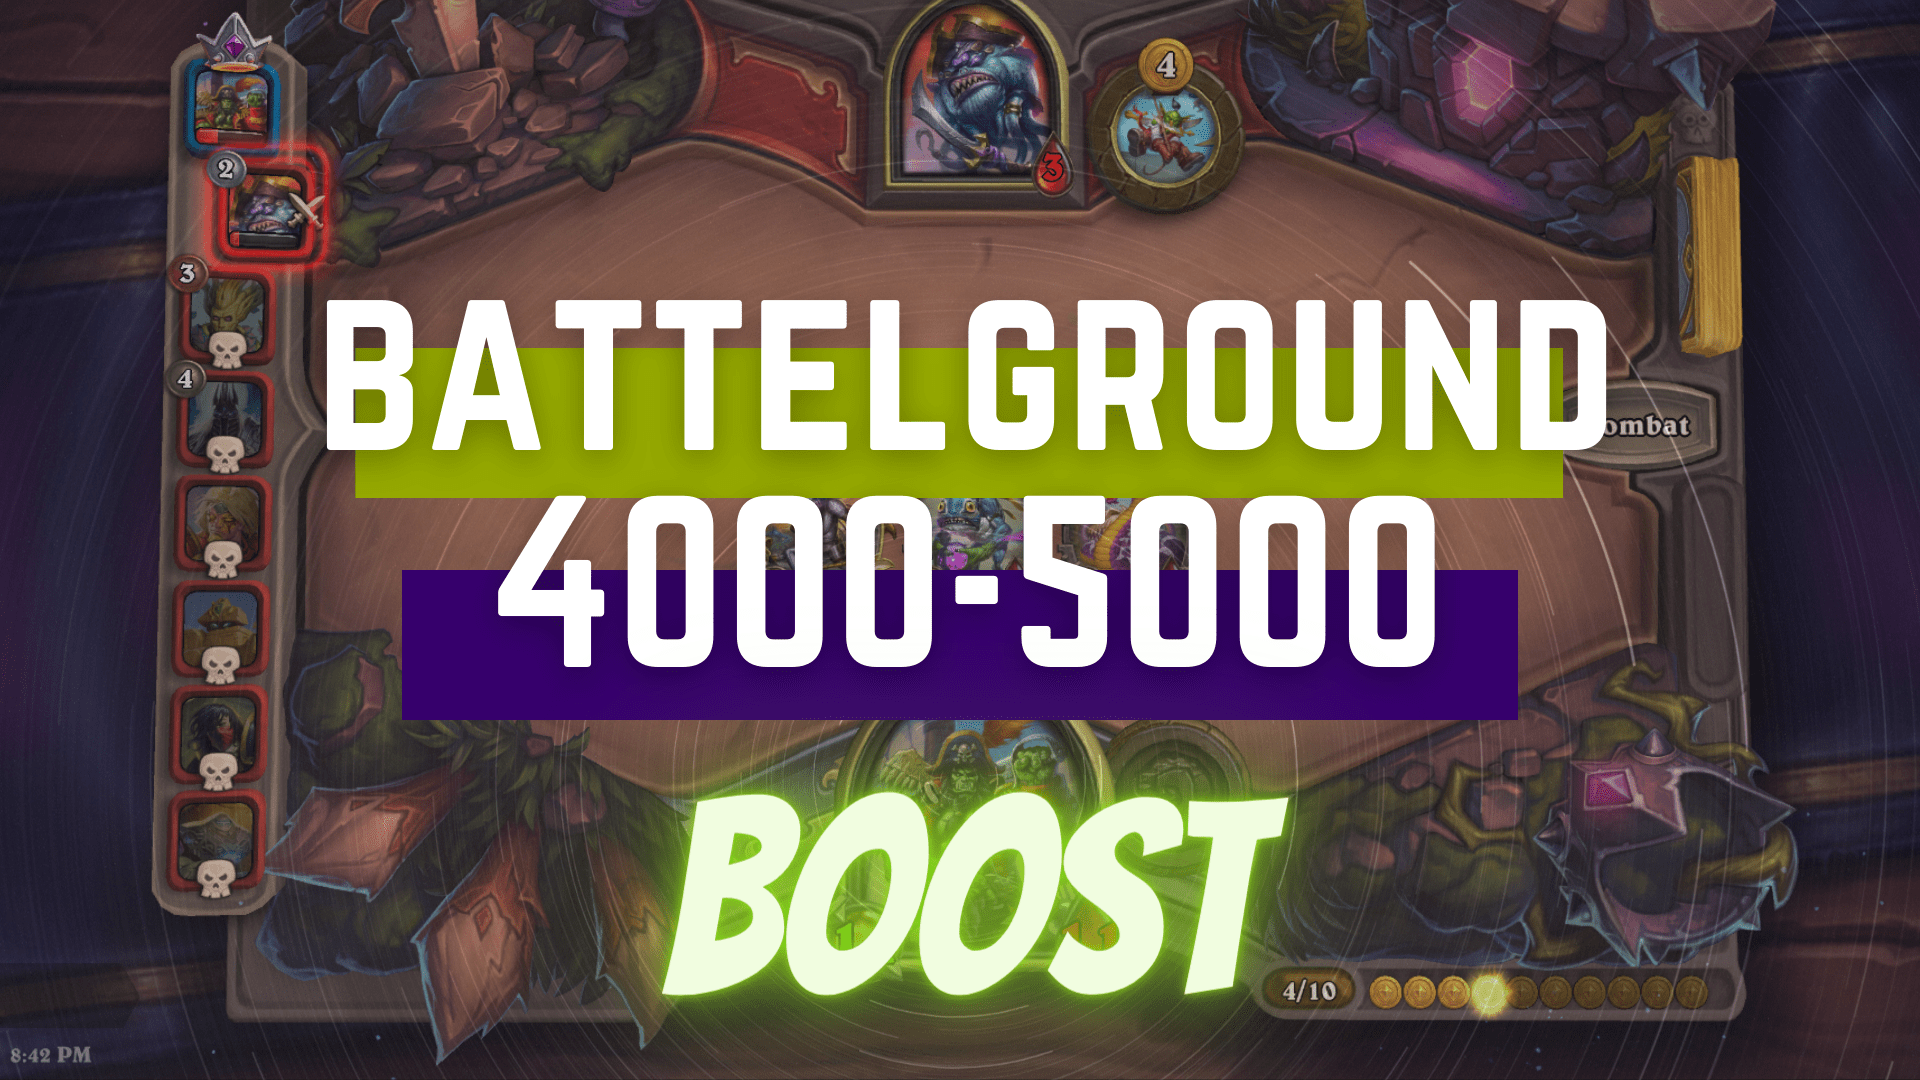 [Battlegrounds rating] Boost from 4000 to 5000 (price for +100) Zafari - e2p.com